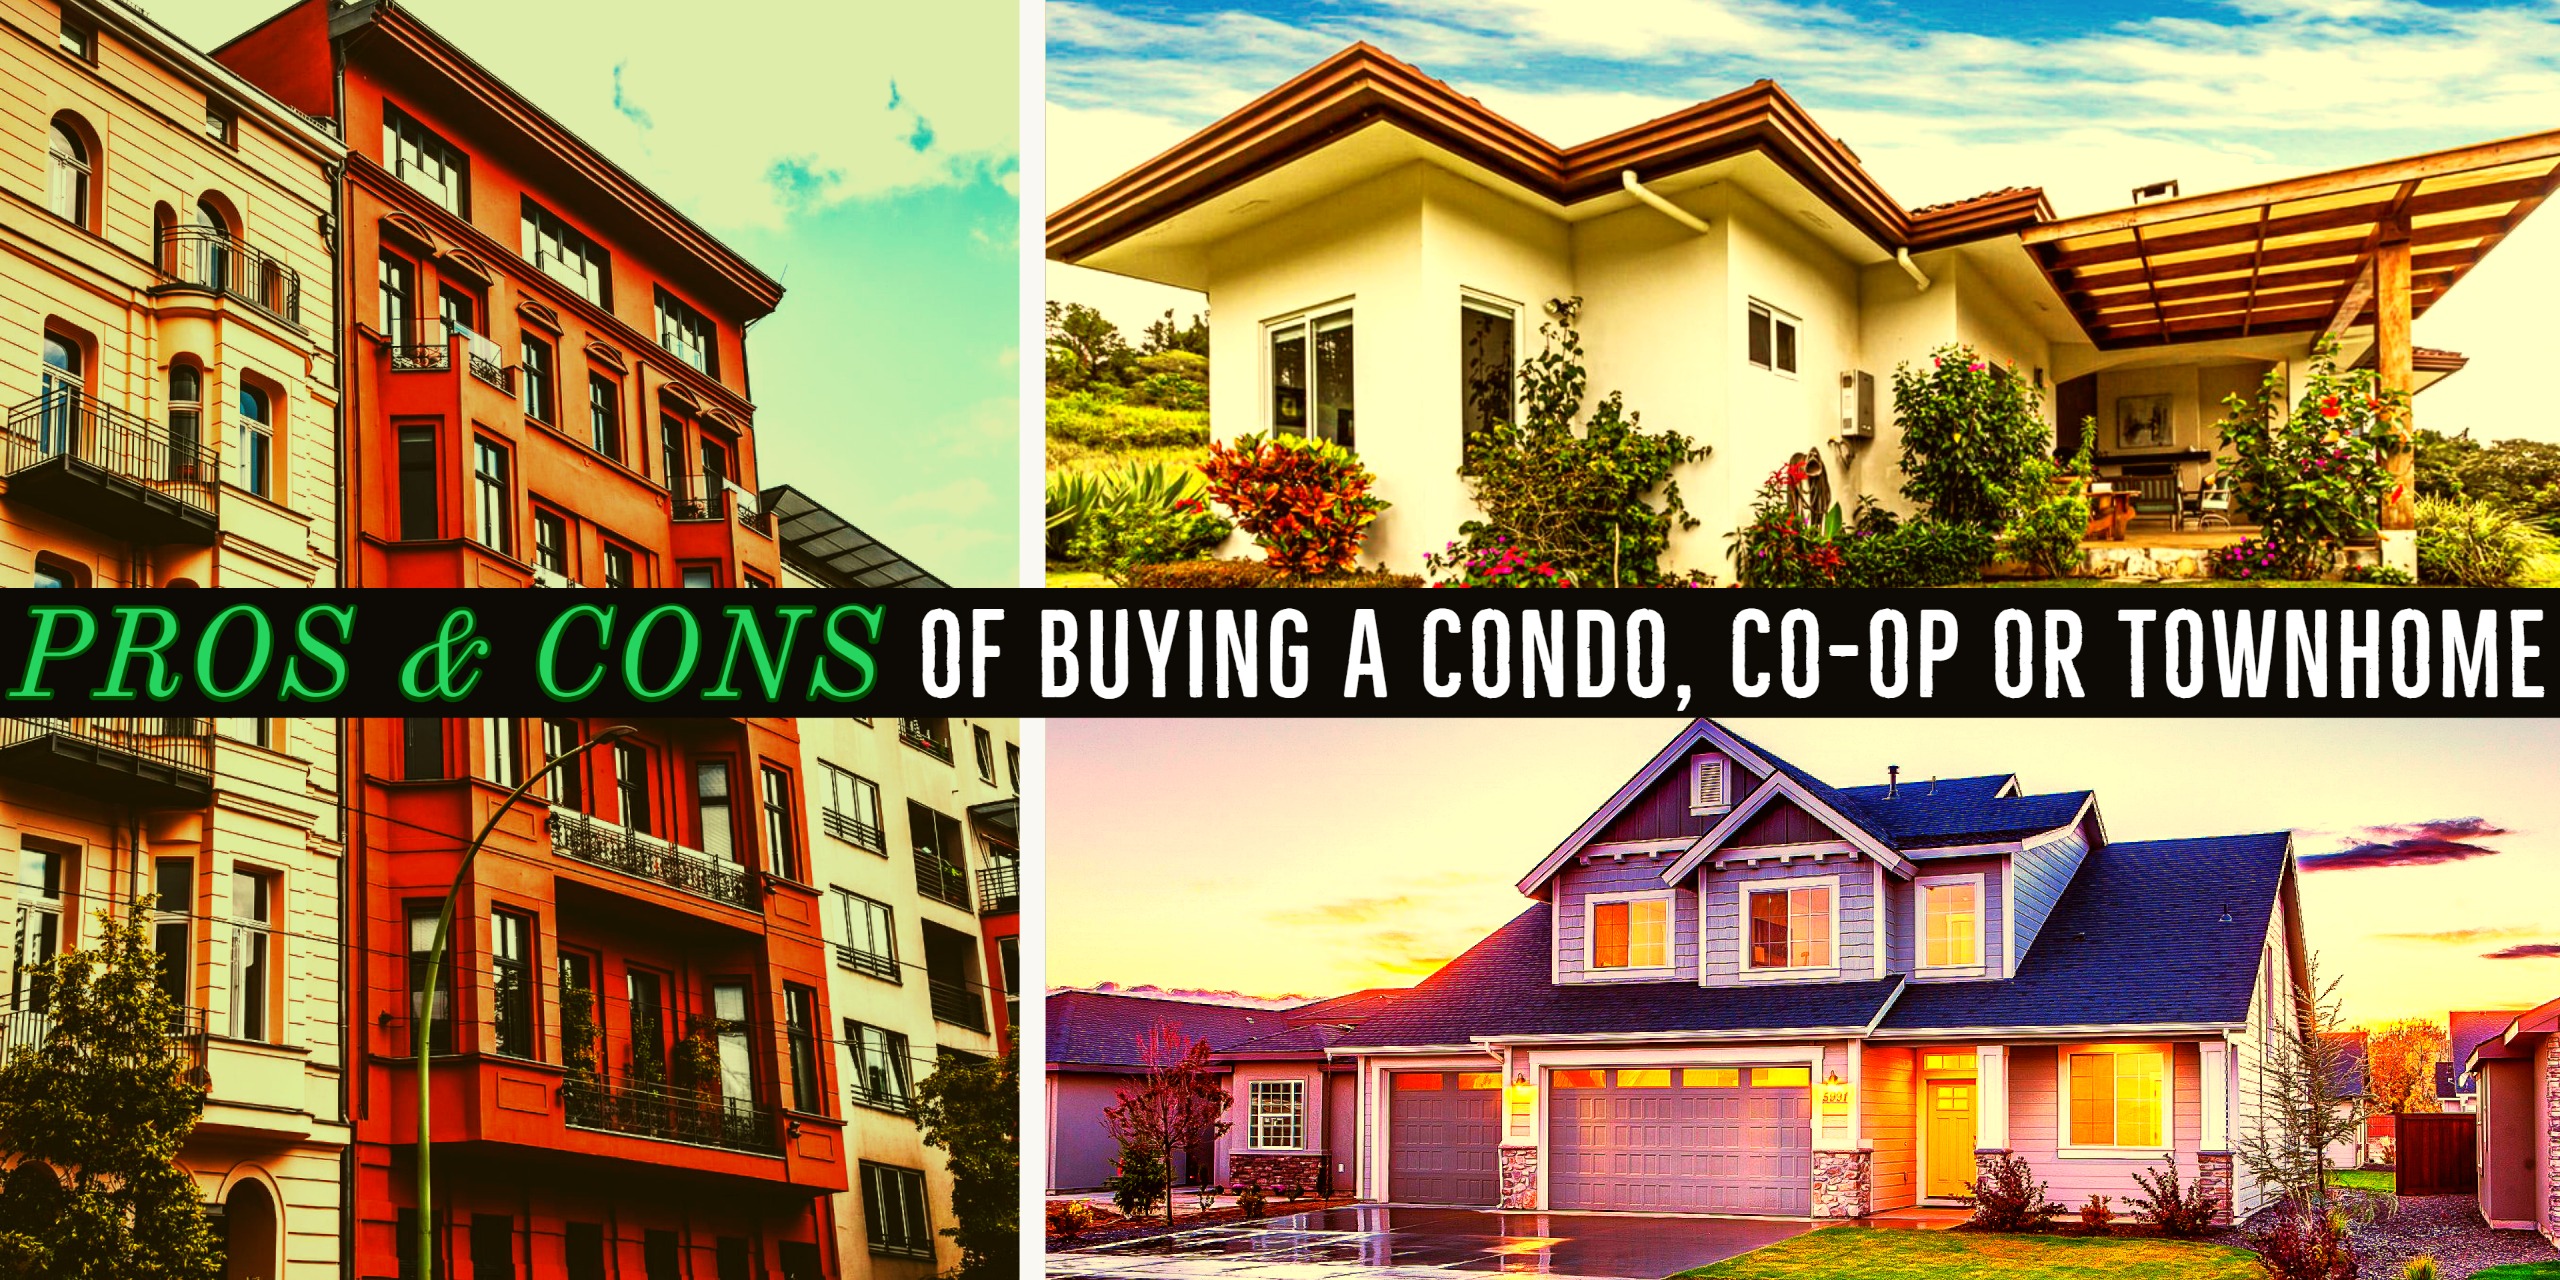 Pros & cons of buying a condo, co-op or townhome